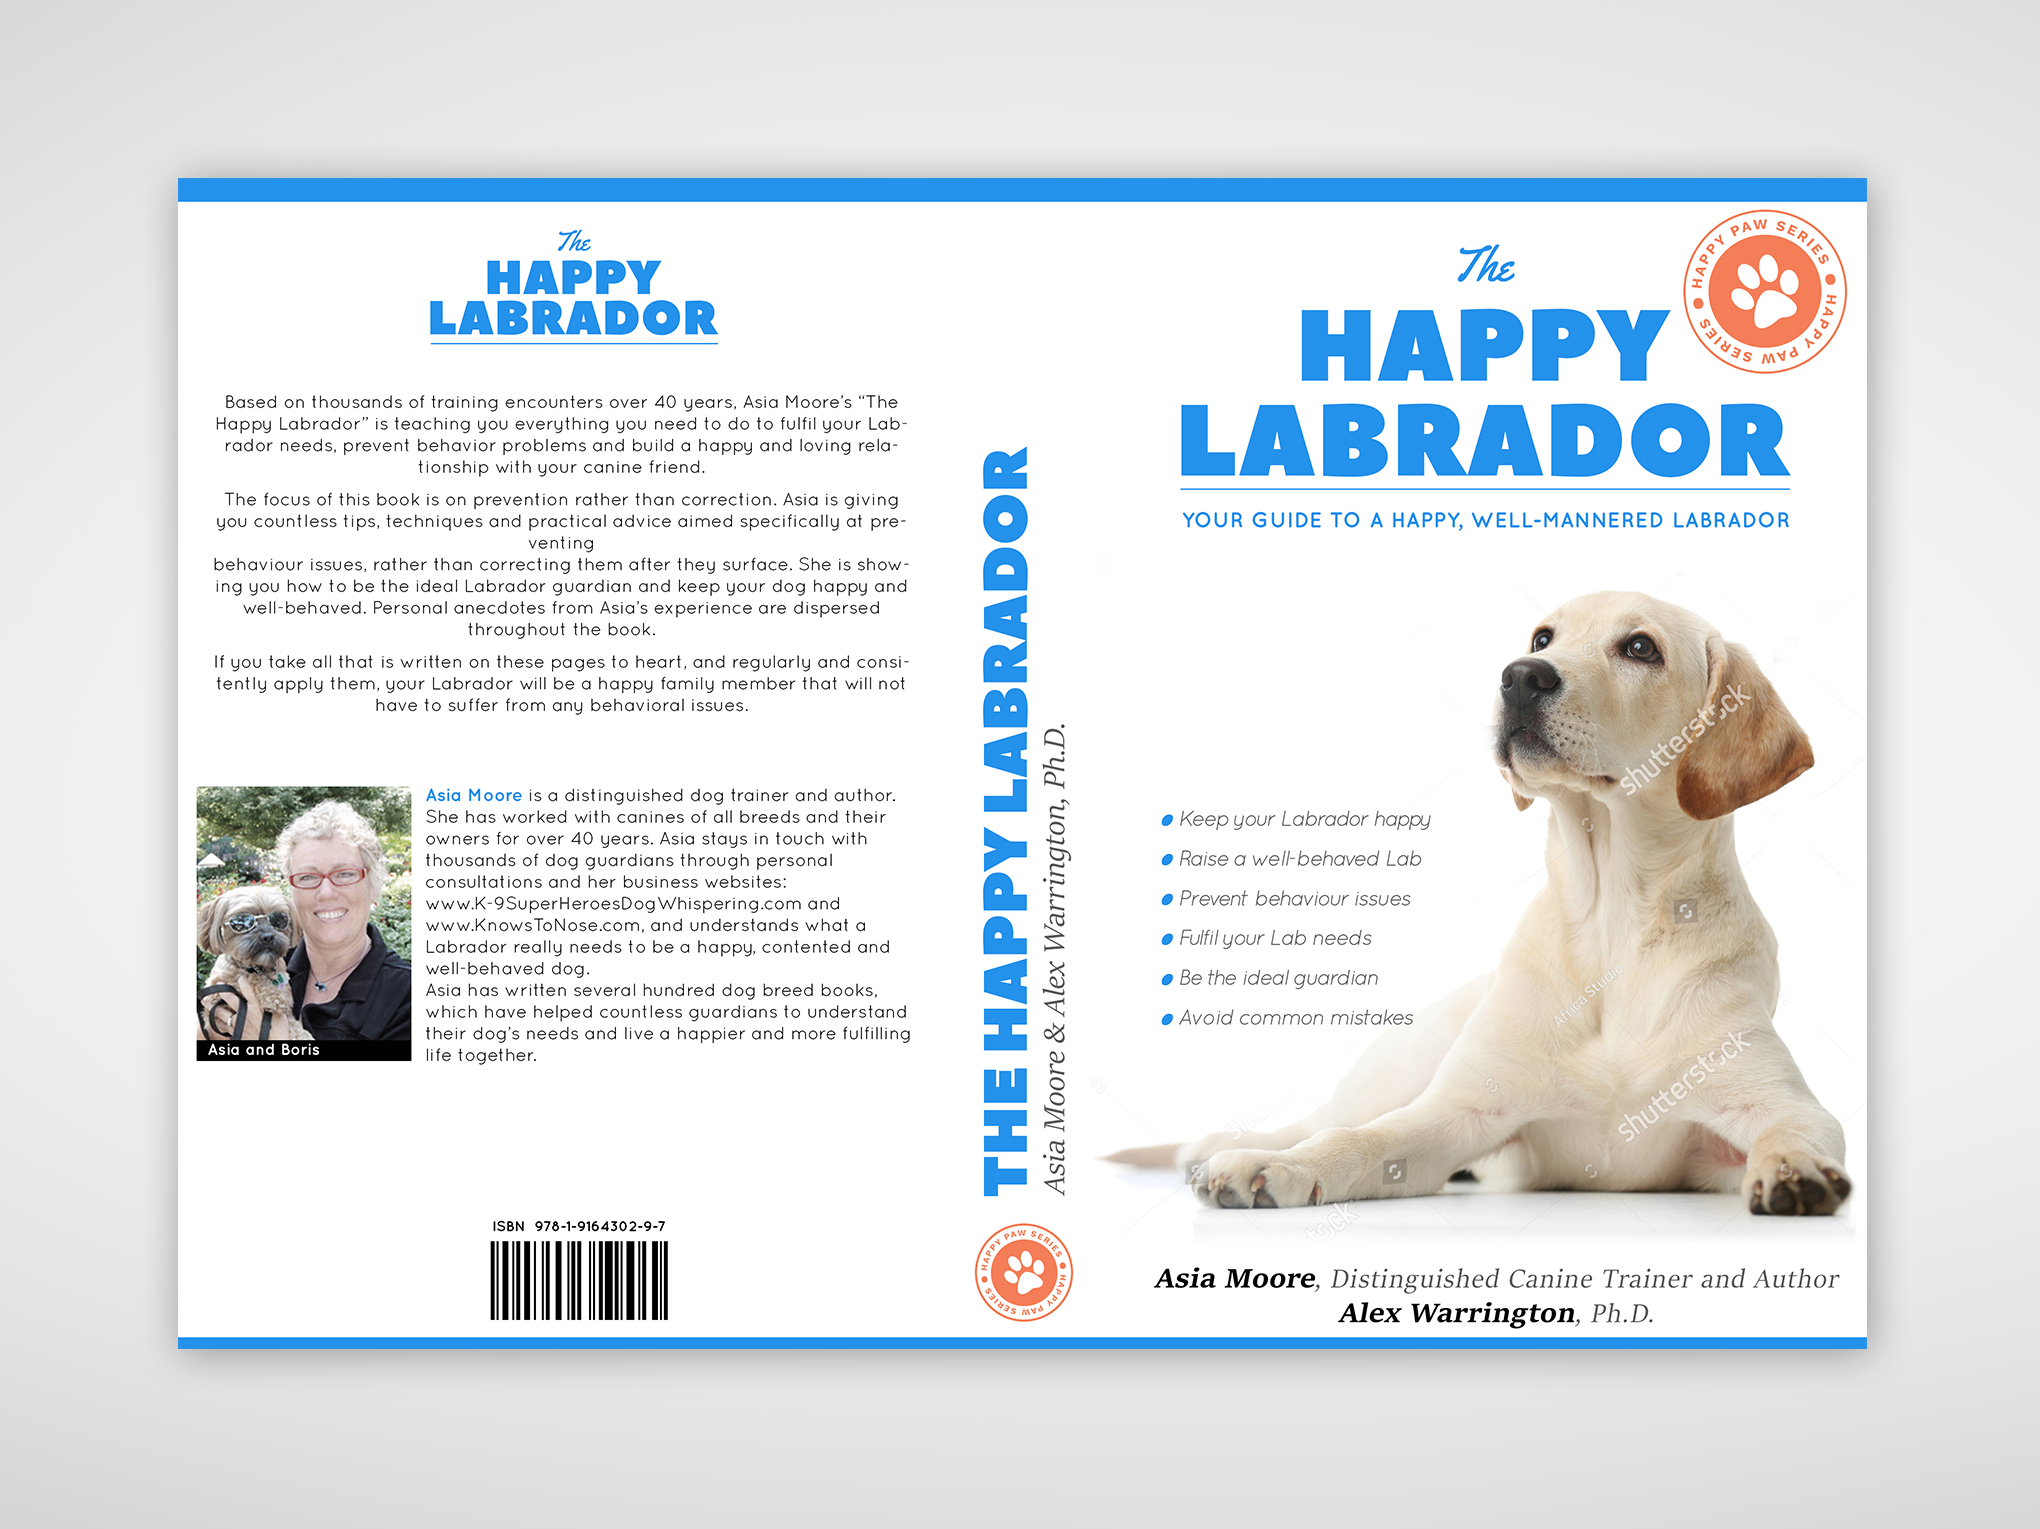 Book cover design 'Happy Labrador' - full layout